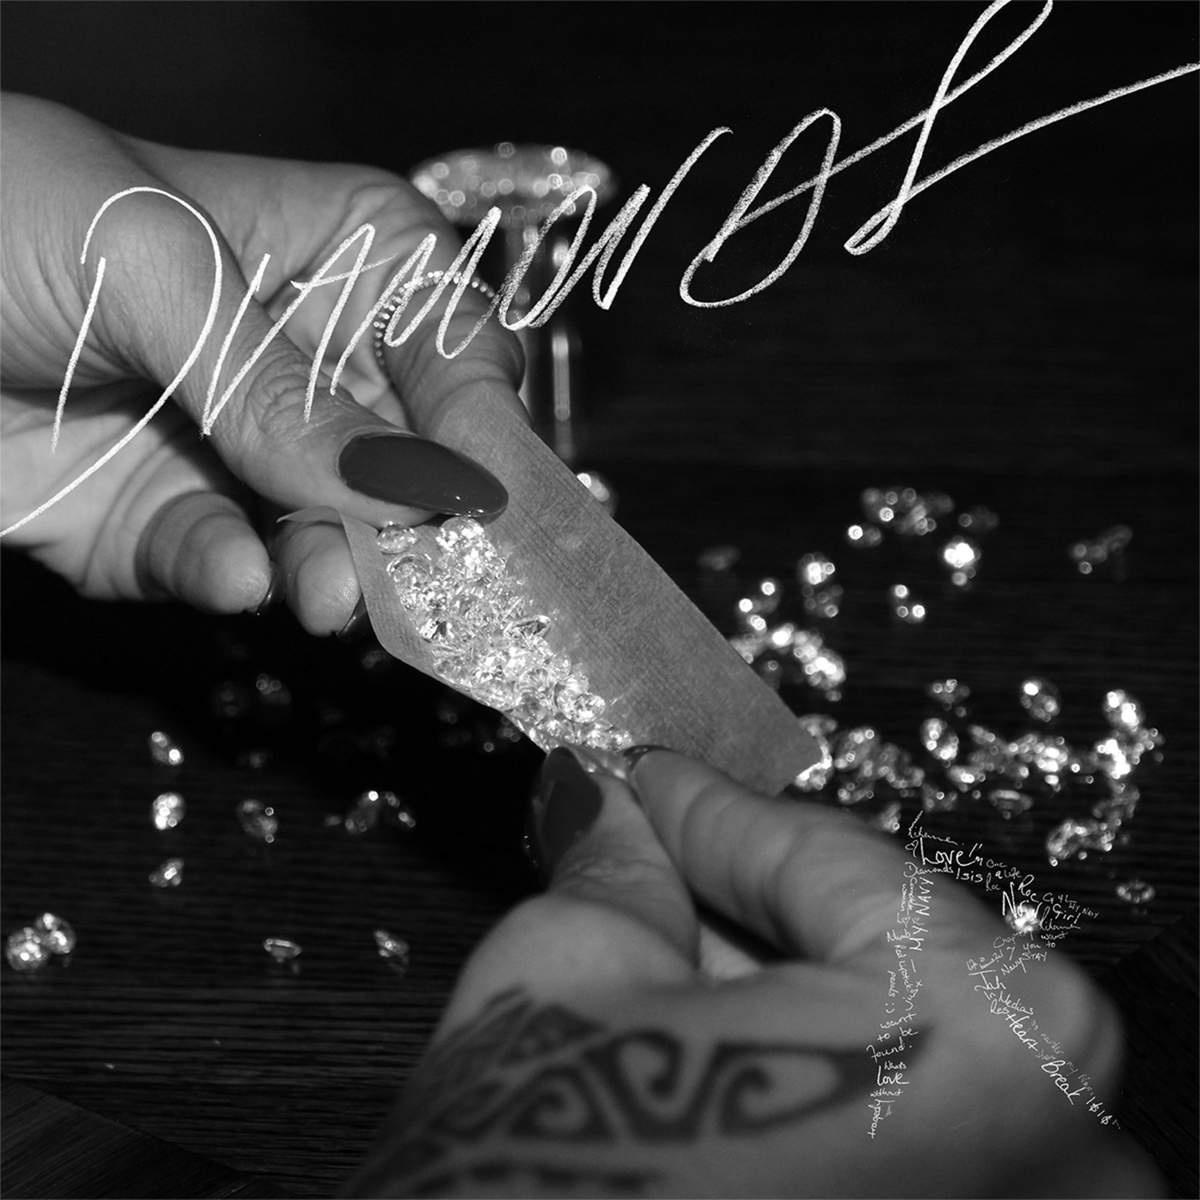 diamonds - rihanna - 网易云音乐